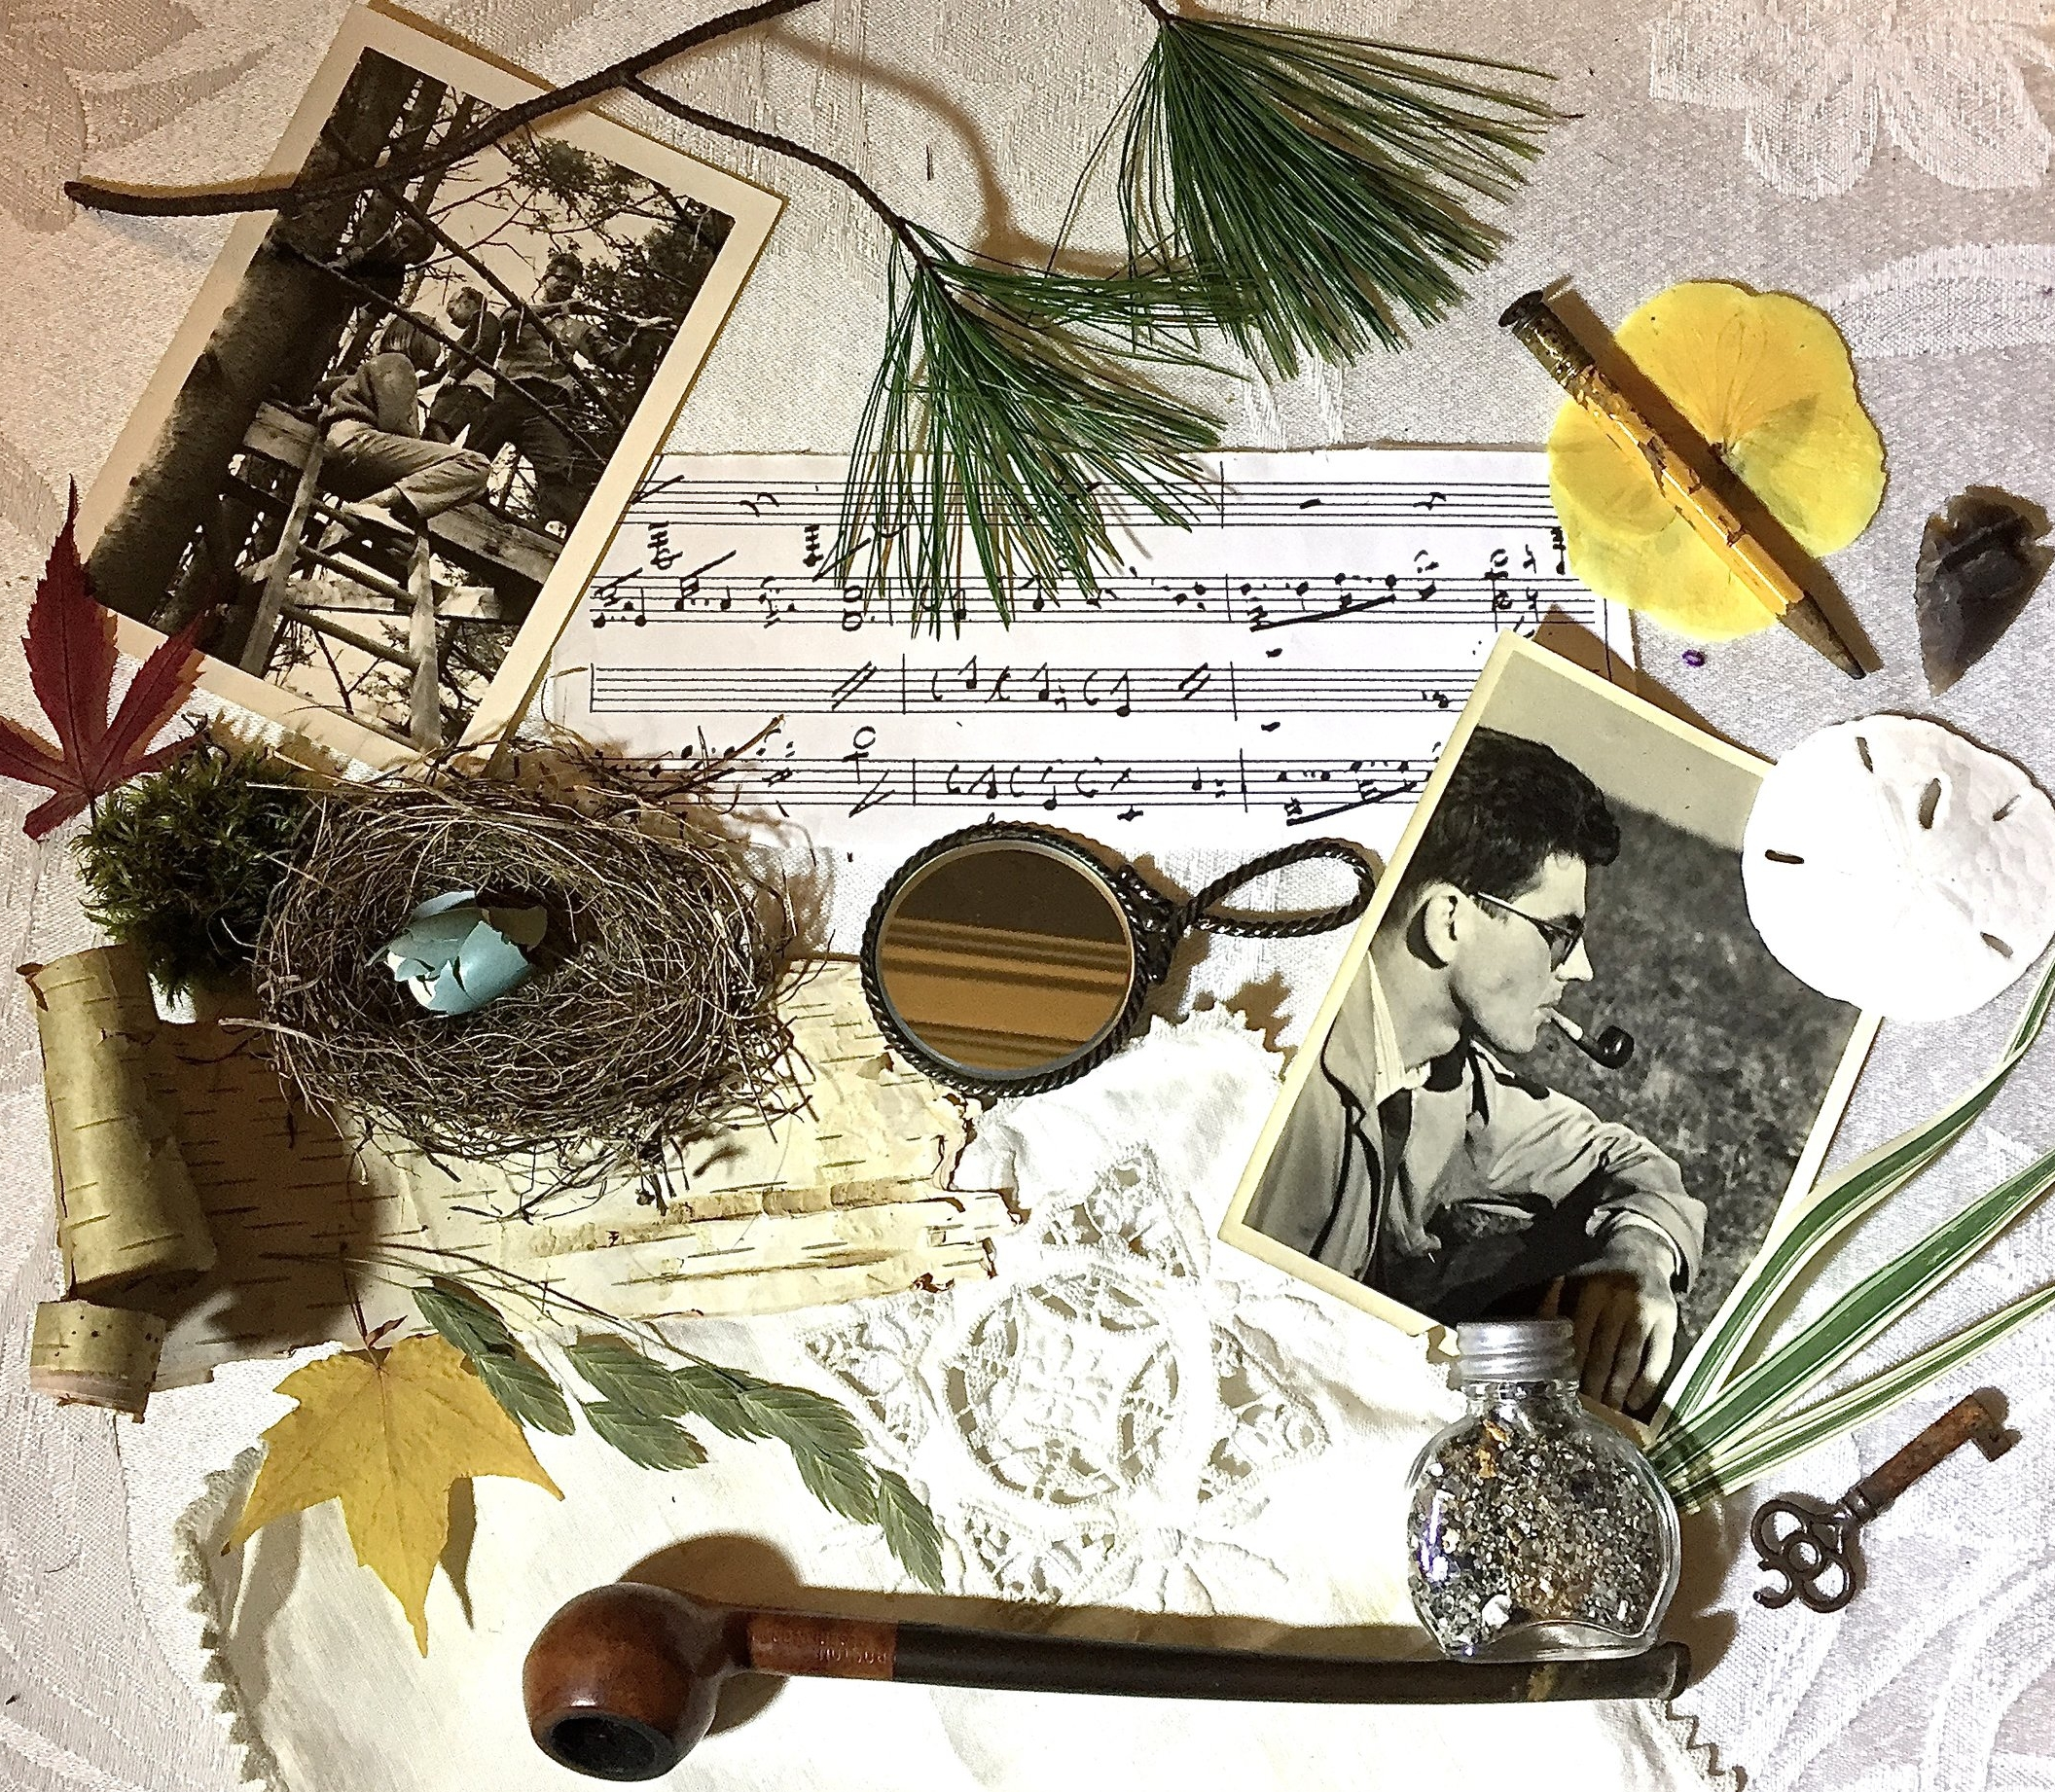 Collage wh memorabilia and photos, bird's nest, pipe, key, old pencil